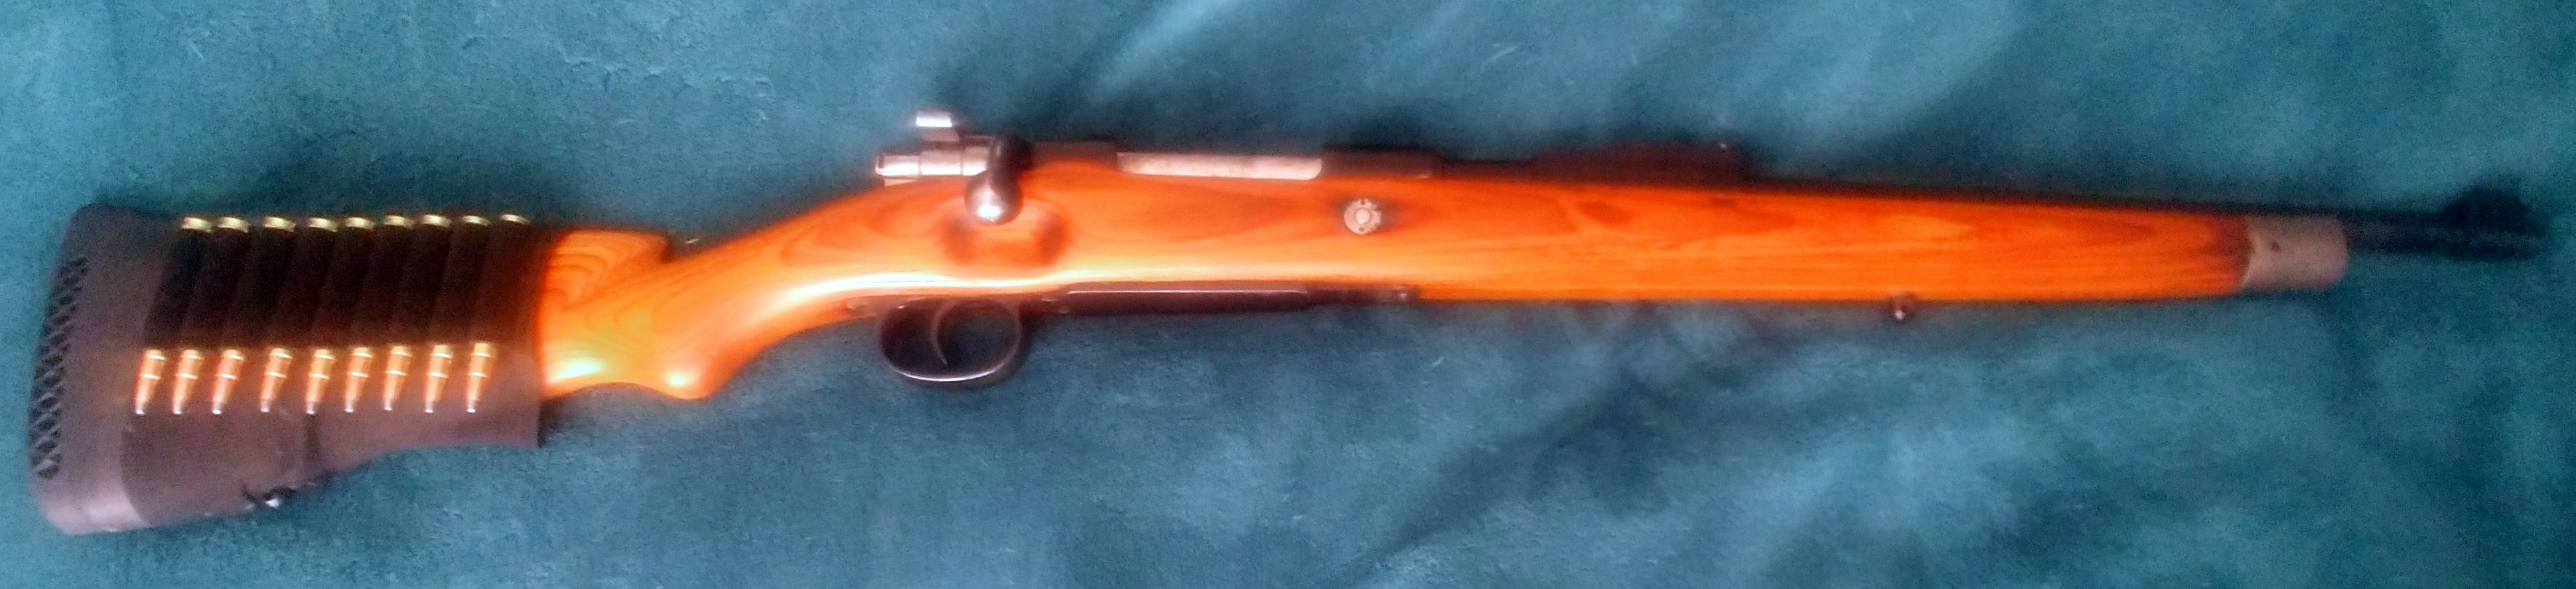 Name:  completed rifle.jpg